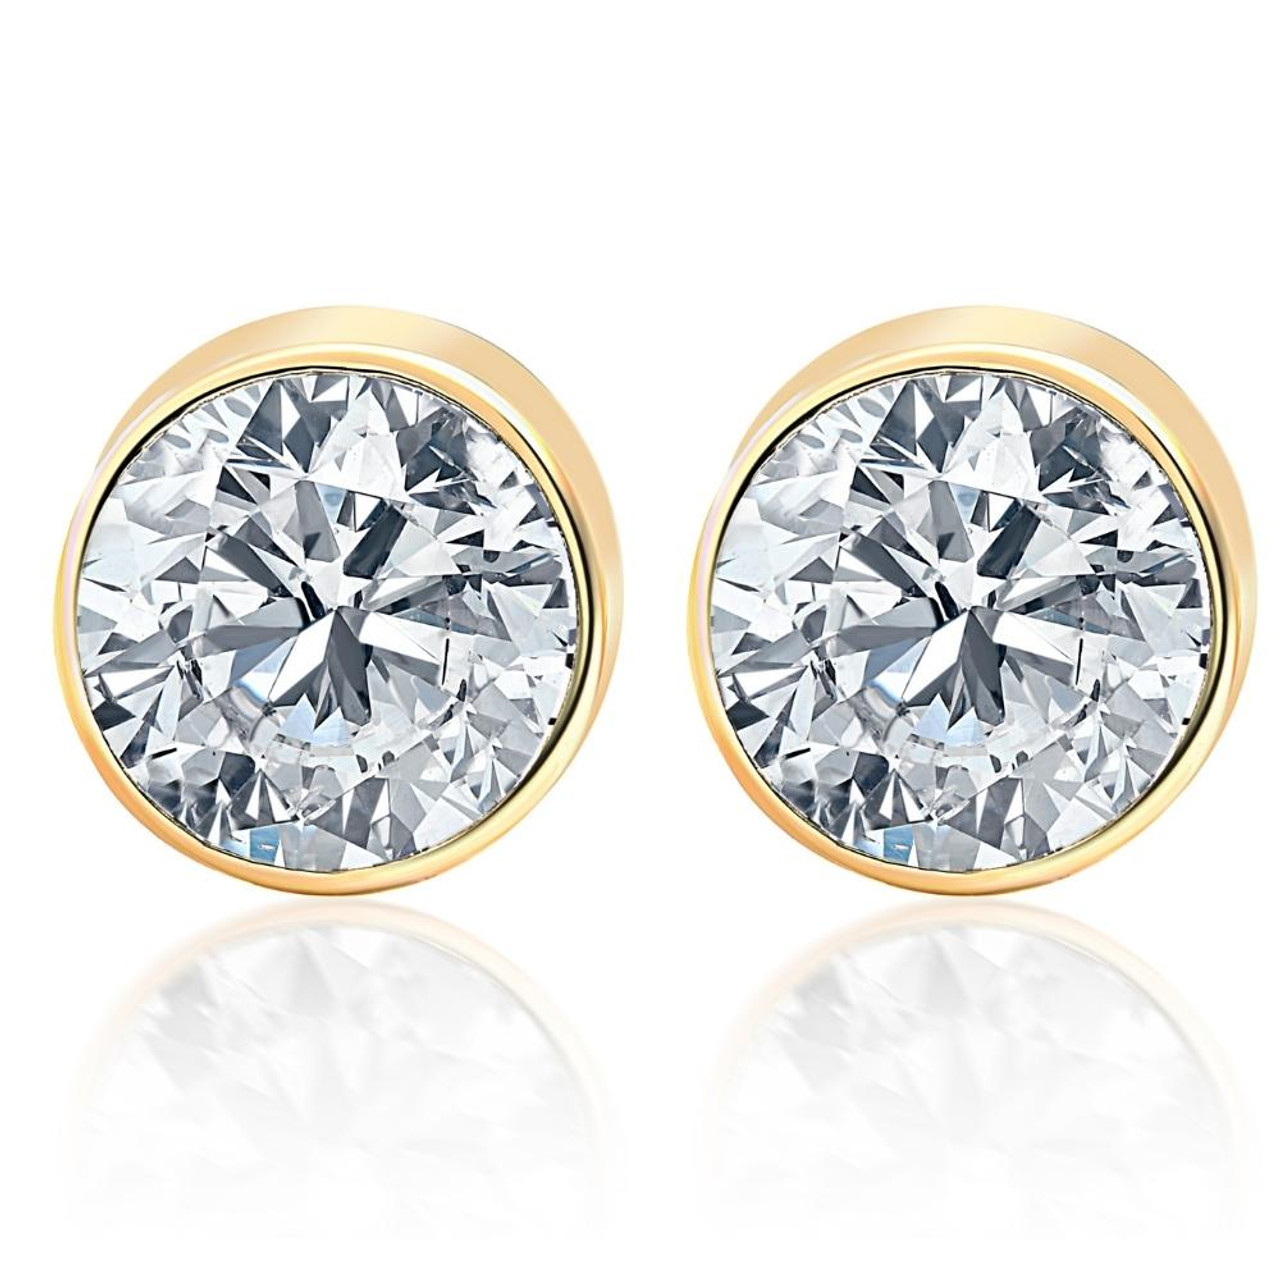 6ad1def986512 2.00Ct Round Brilliant Cut Natural Quality SI1-SI2 Diamond Stud Earrings in  14K Gold Round Bezel Setting (G/H, SI1-SI2)